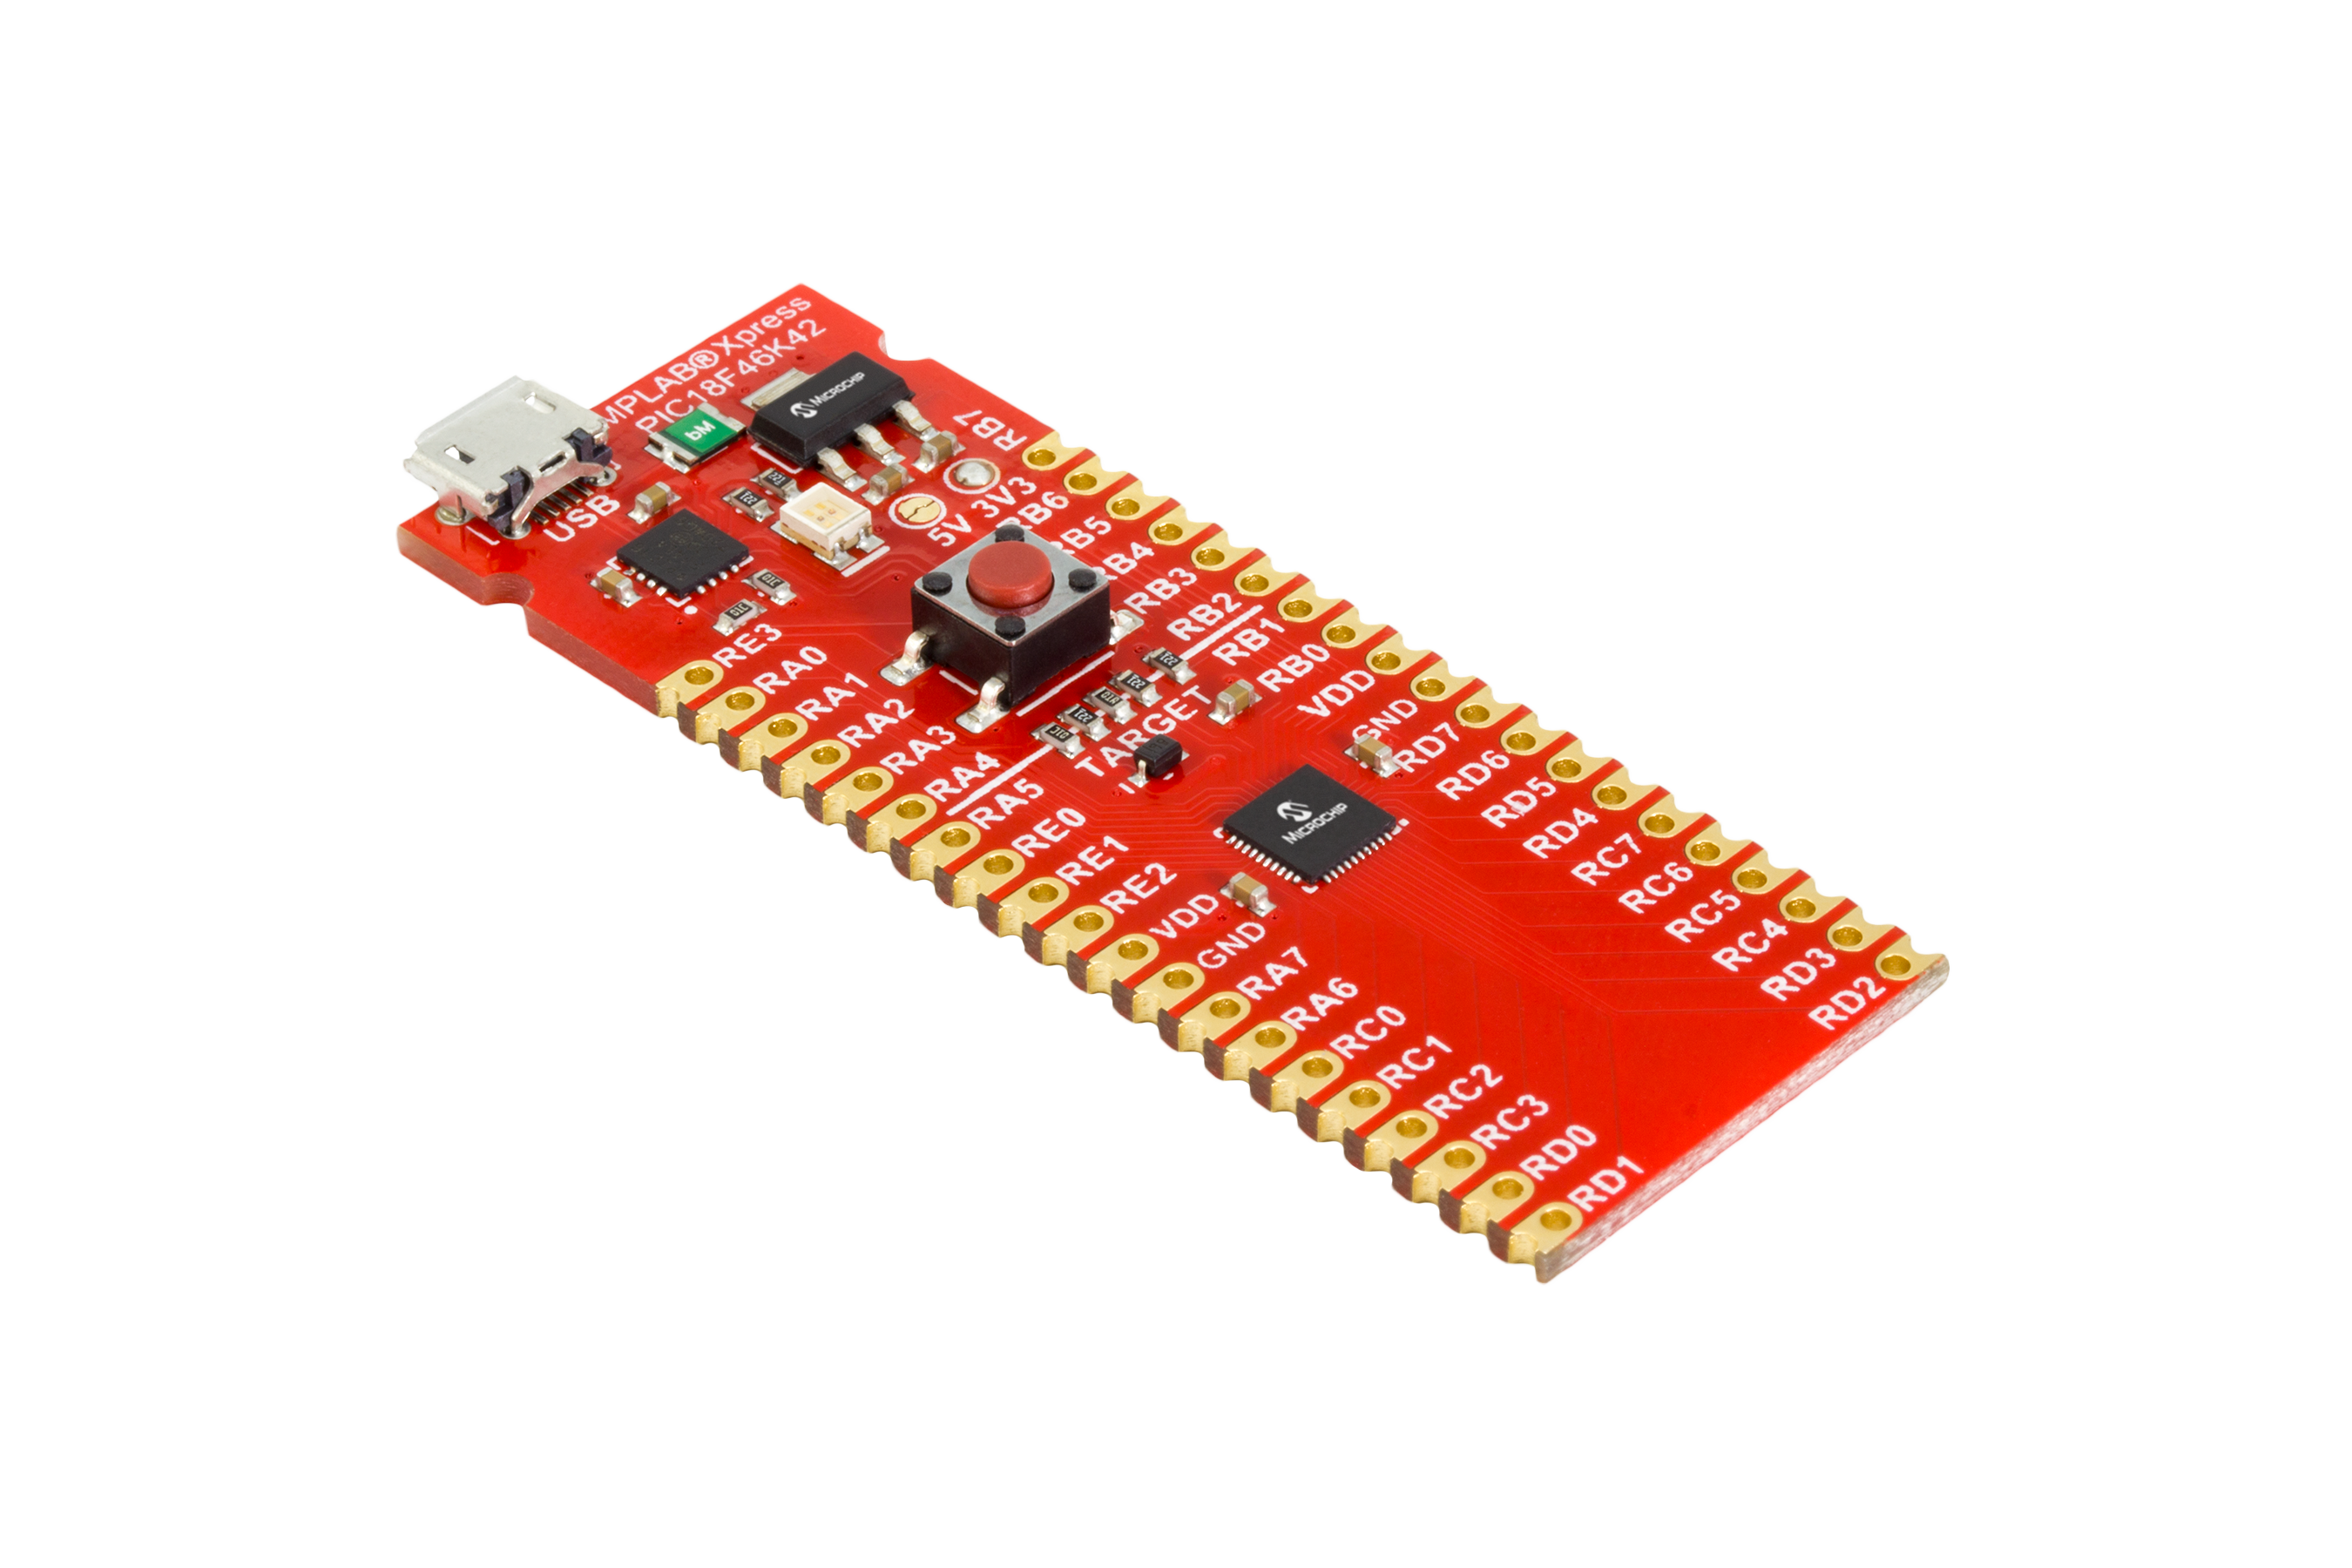 Development Tools How To Make Custom Shields For A Microcontroller Board With The Pic18f K42 Product Family Has Never Been Easier This Xpress Grants Full Access Of Mcus Rich Set Core